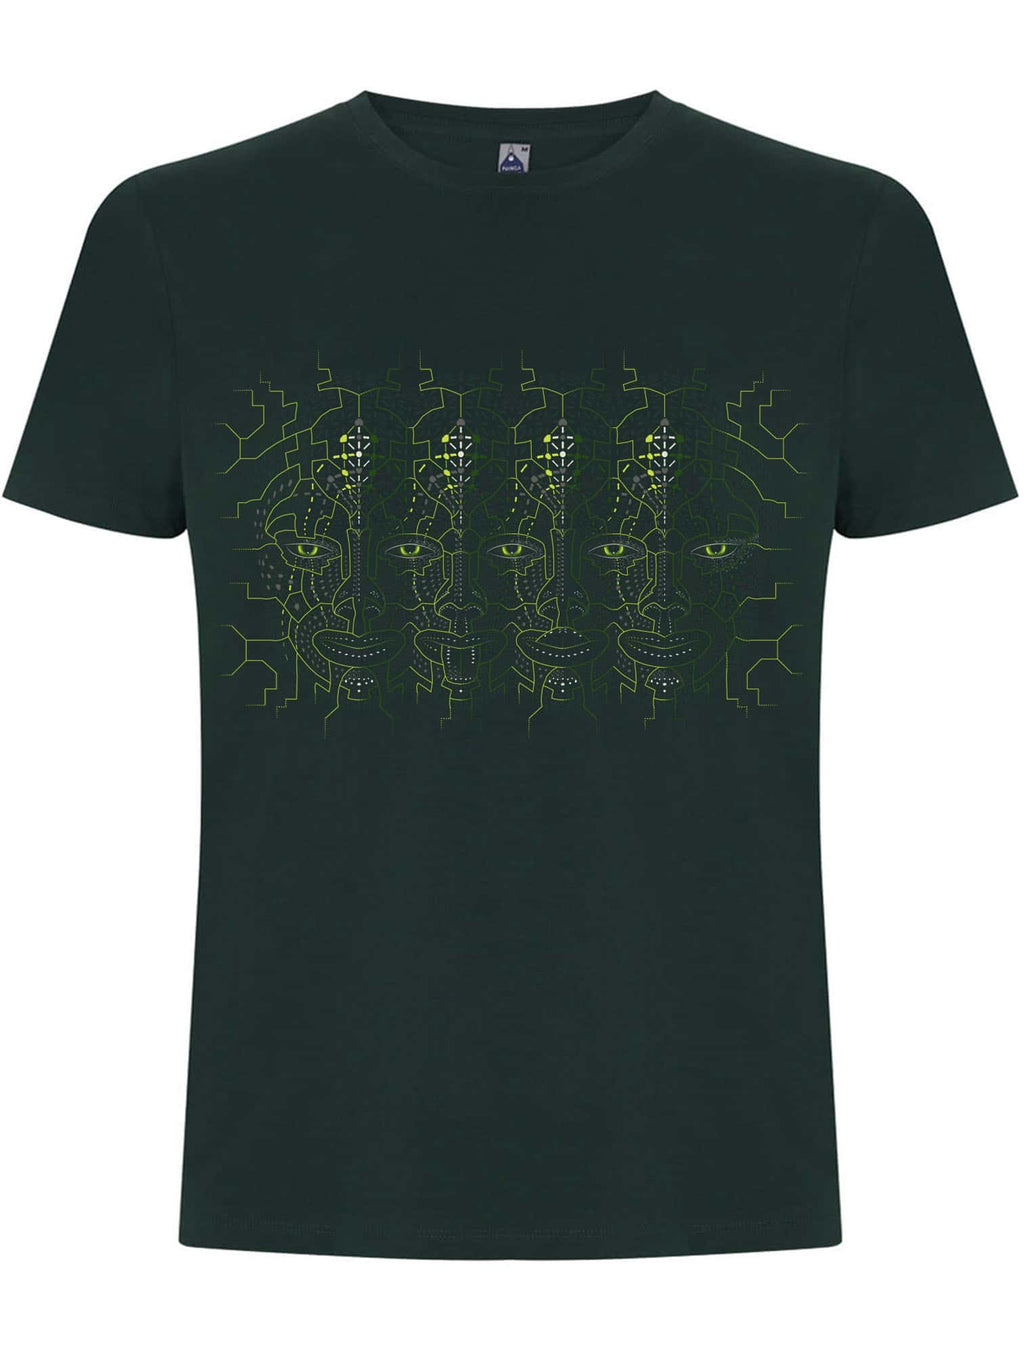 4th Dimension Made To Order Men T-Shirt - Bottle